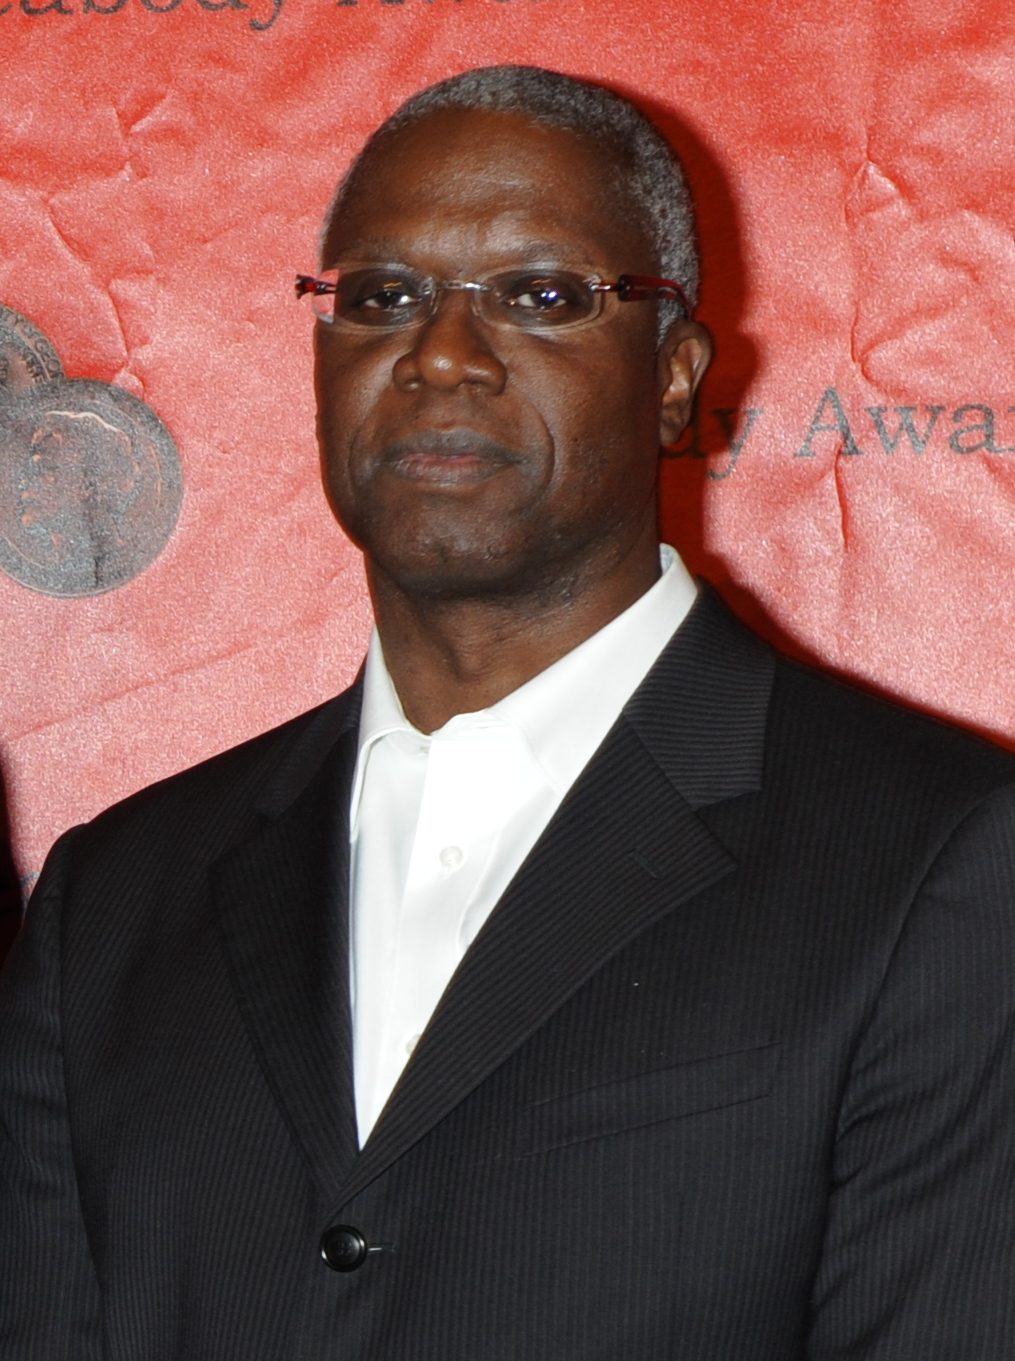 The 56-year old son of father (?) and mother(?) Andre Braugher in 2019 photo. Andre Braugher earned a 0.1 million dollar salary - leaving the net worth at 8 million in 2019